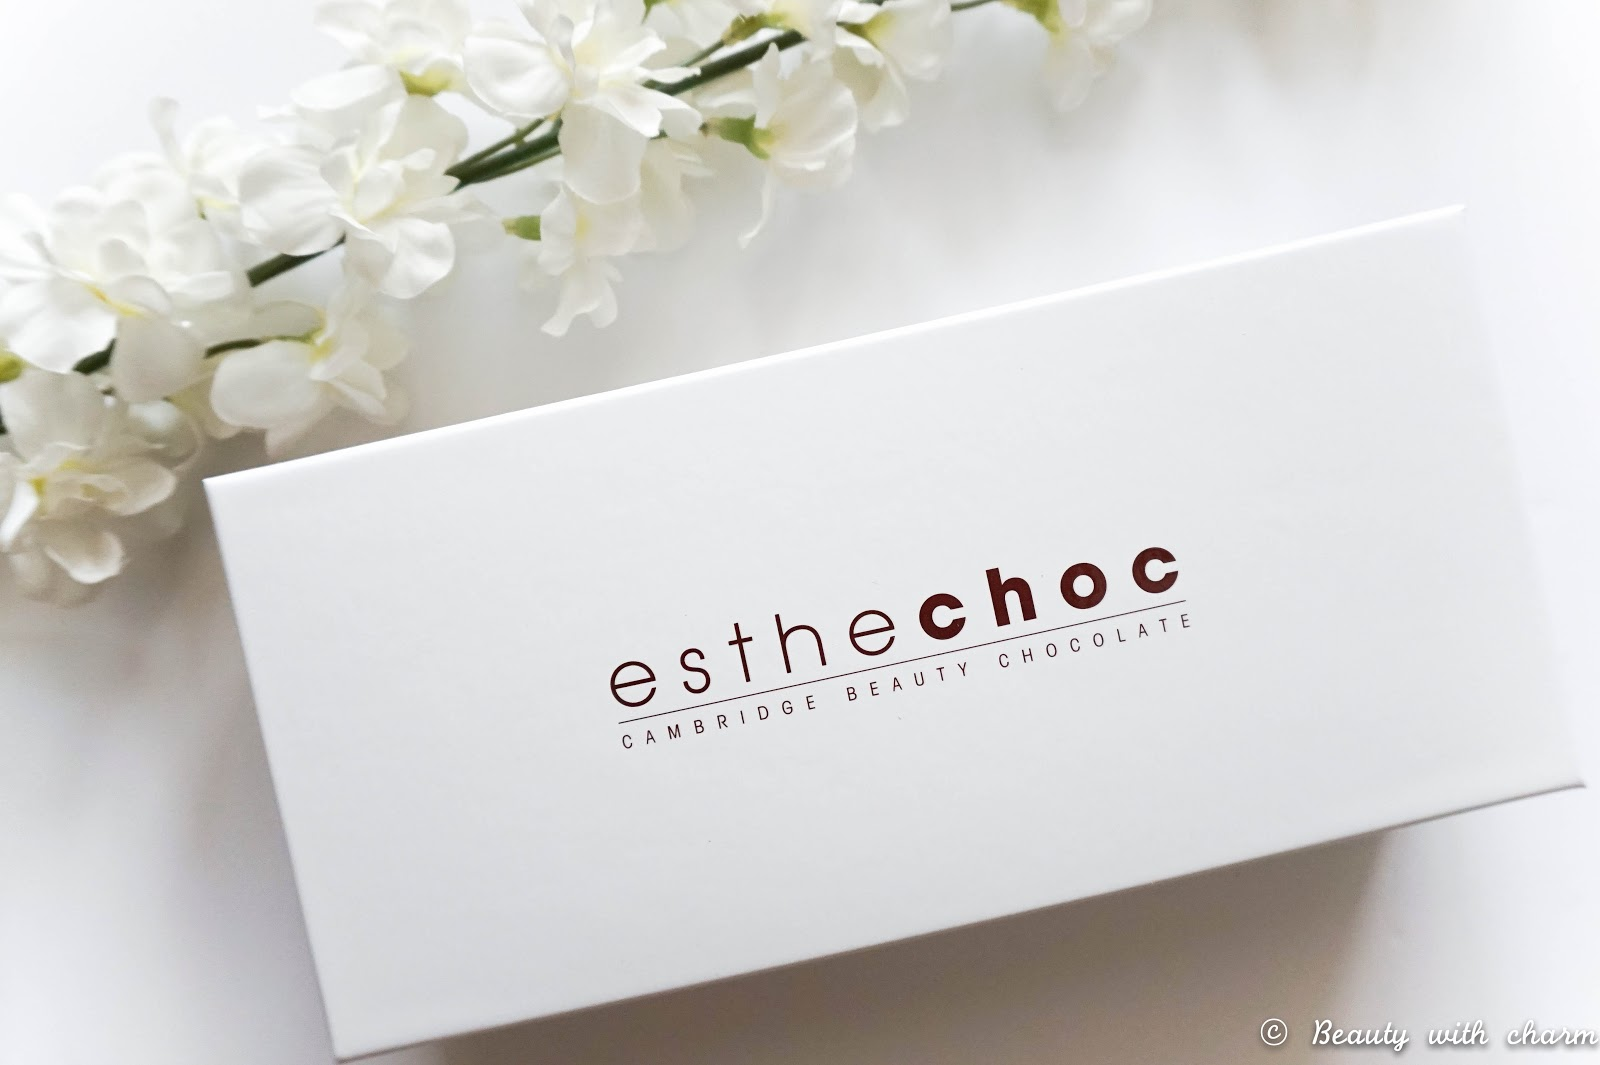 Esthechoc Anti-ageing Cambridge Beauty Cocolate